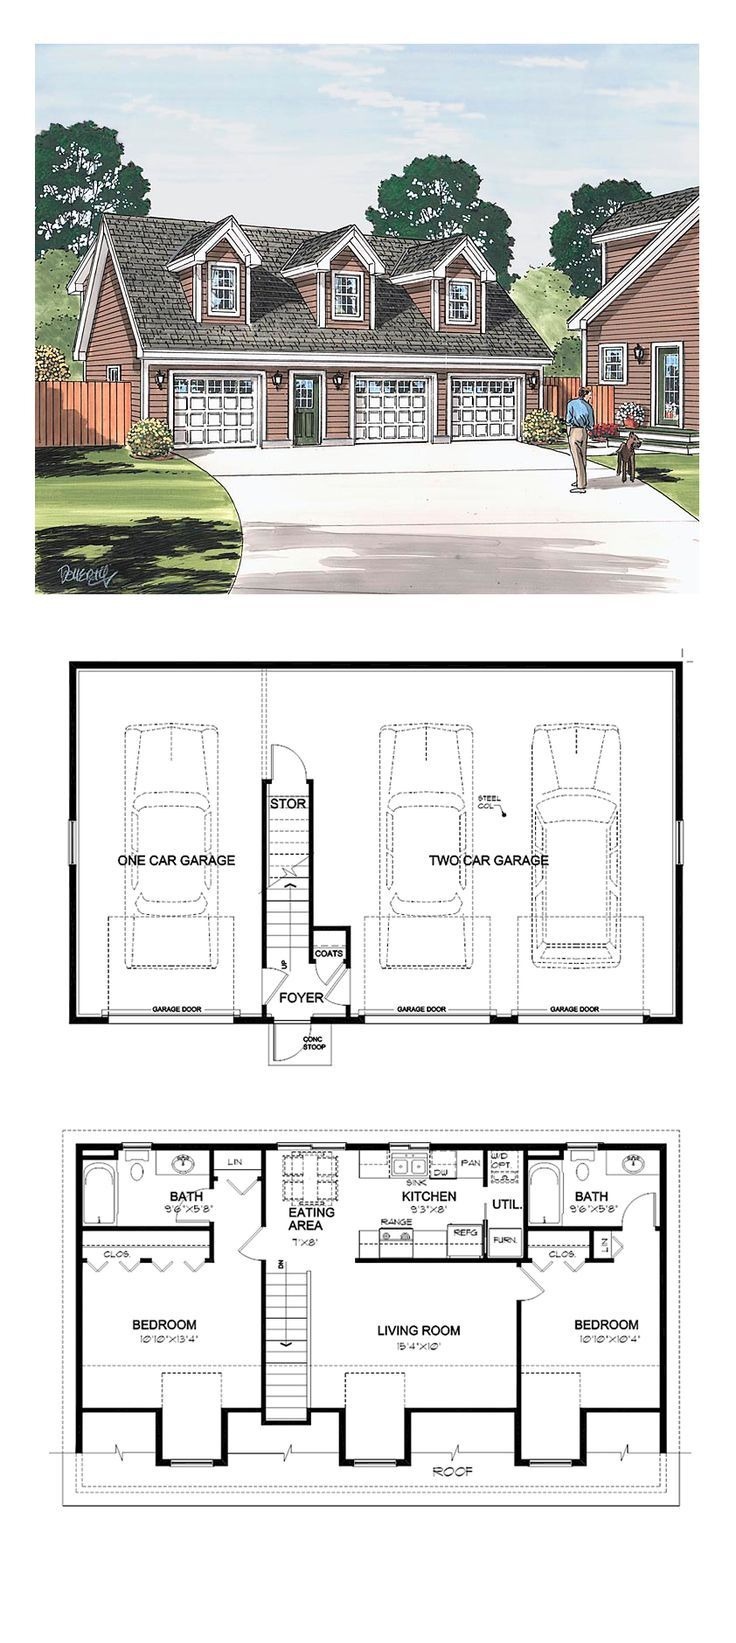 Garage with Guest House Plans Fresh Pin by Elaine Pike On House Plans I Like Ot